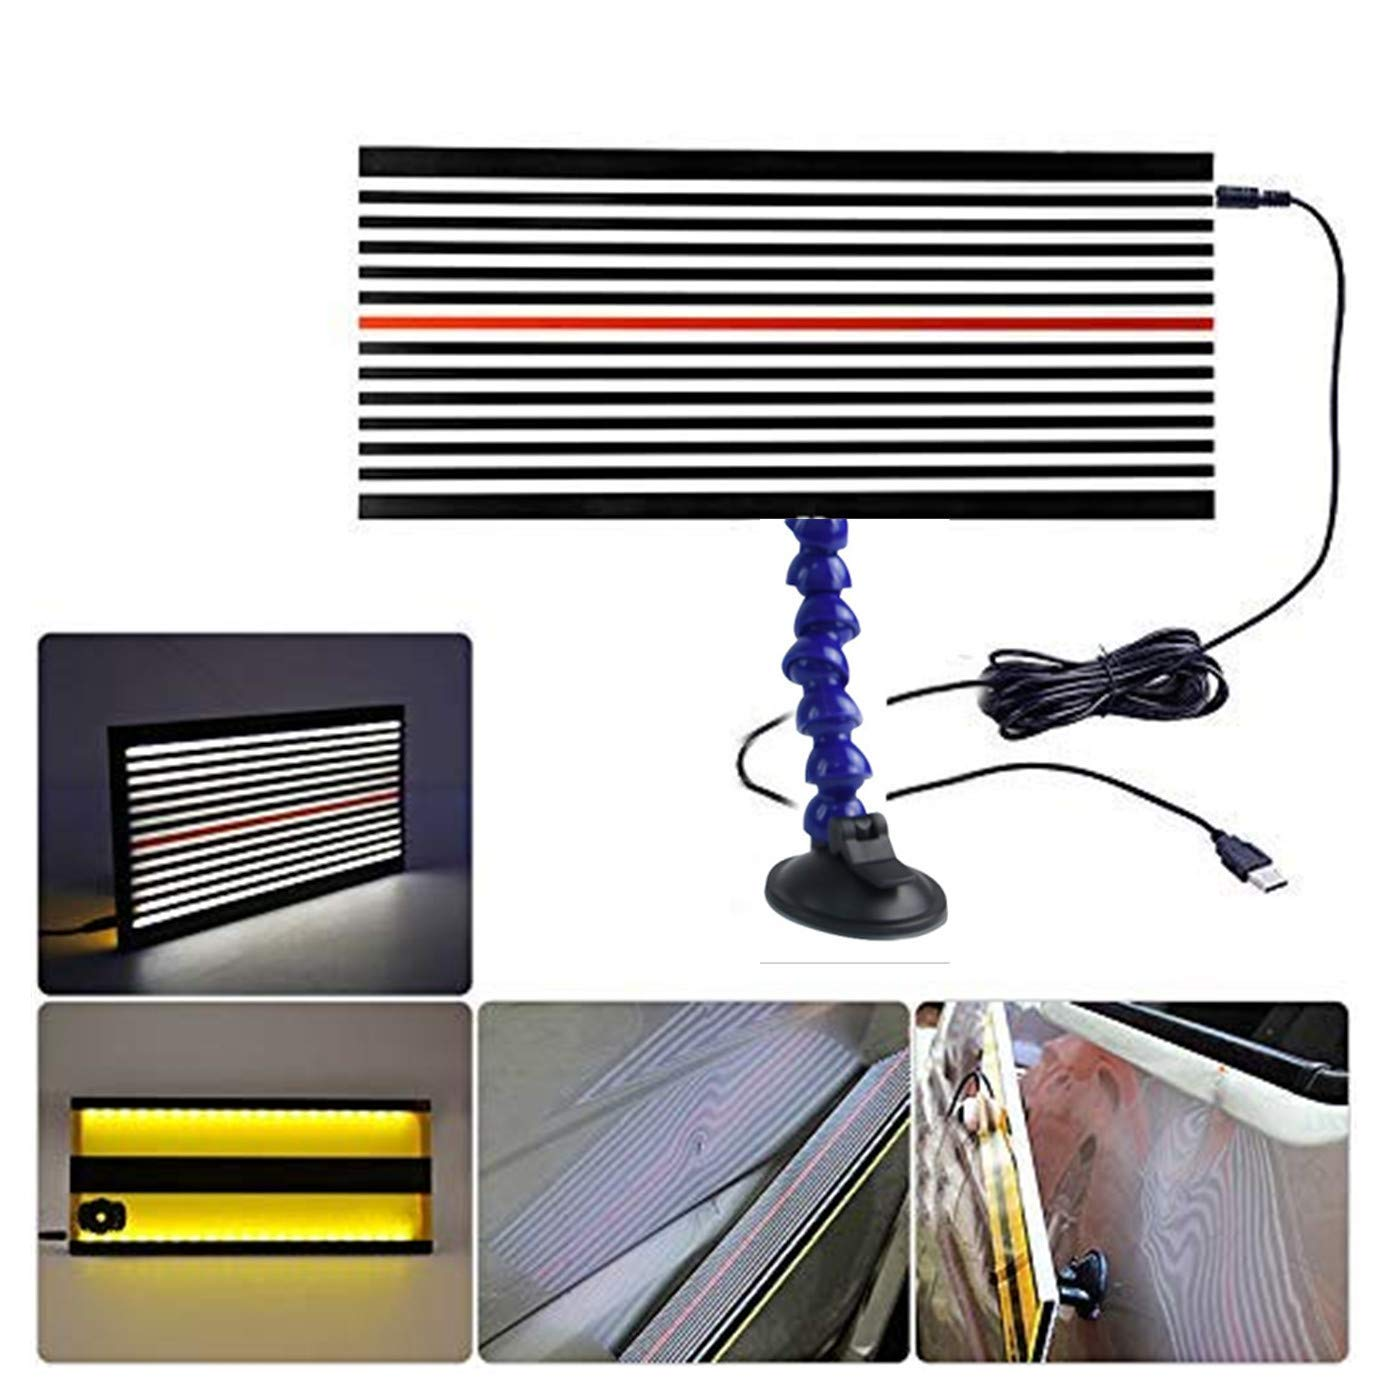 Line Board Professional Adjustable Reflector Board Dent Repair Tool for Cars